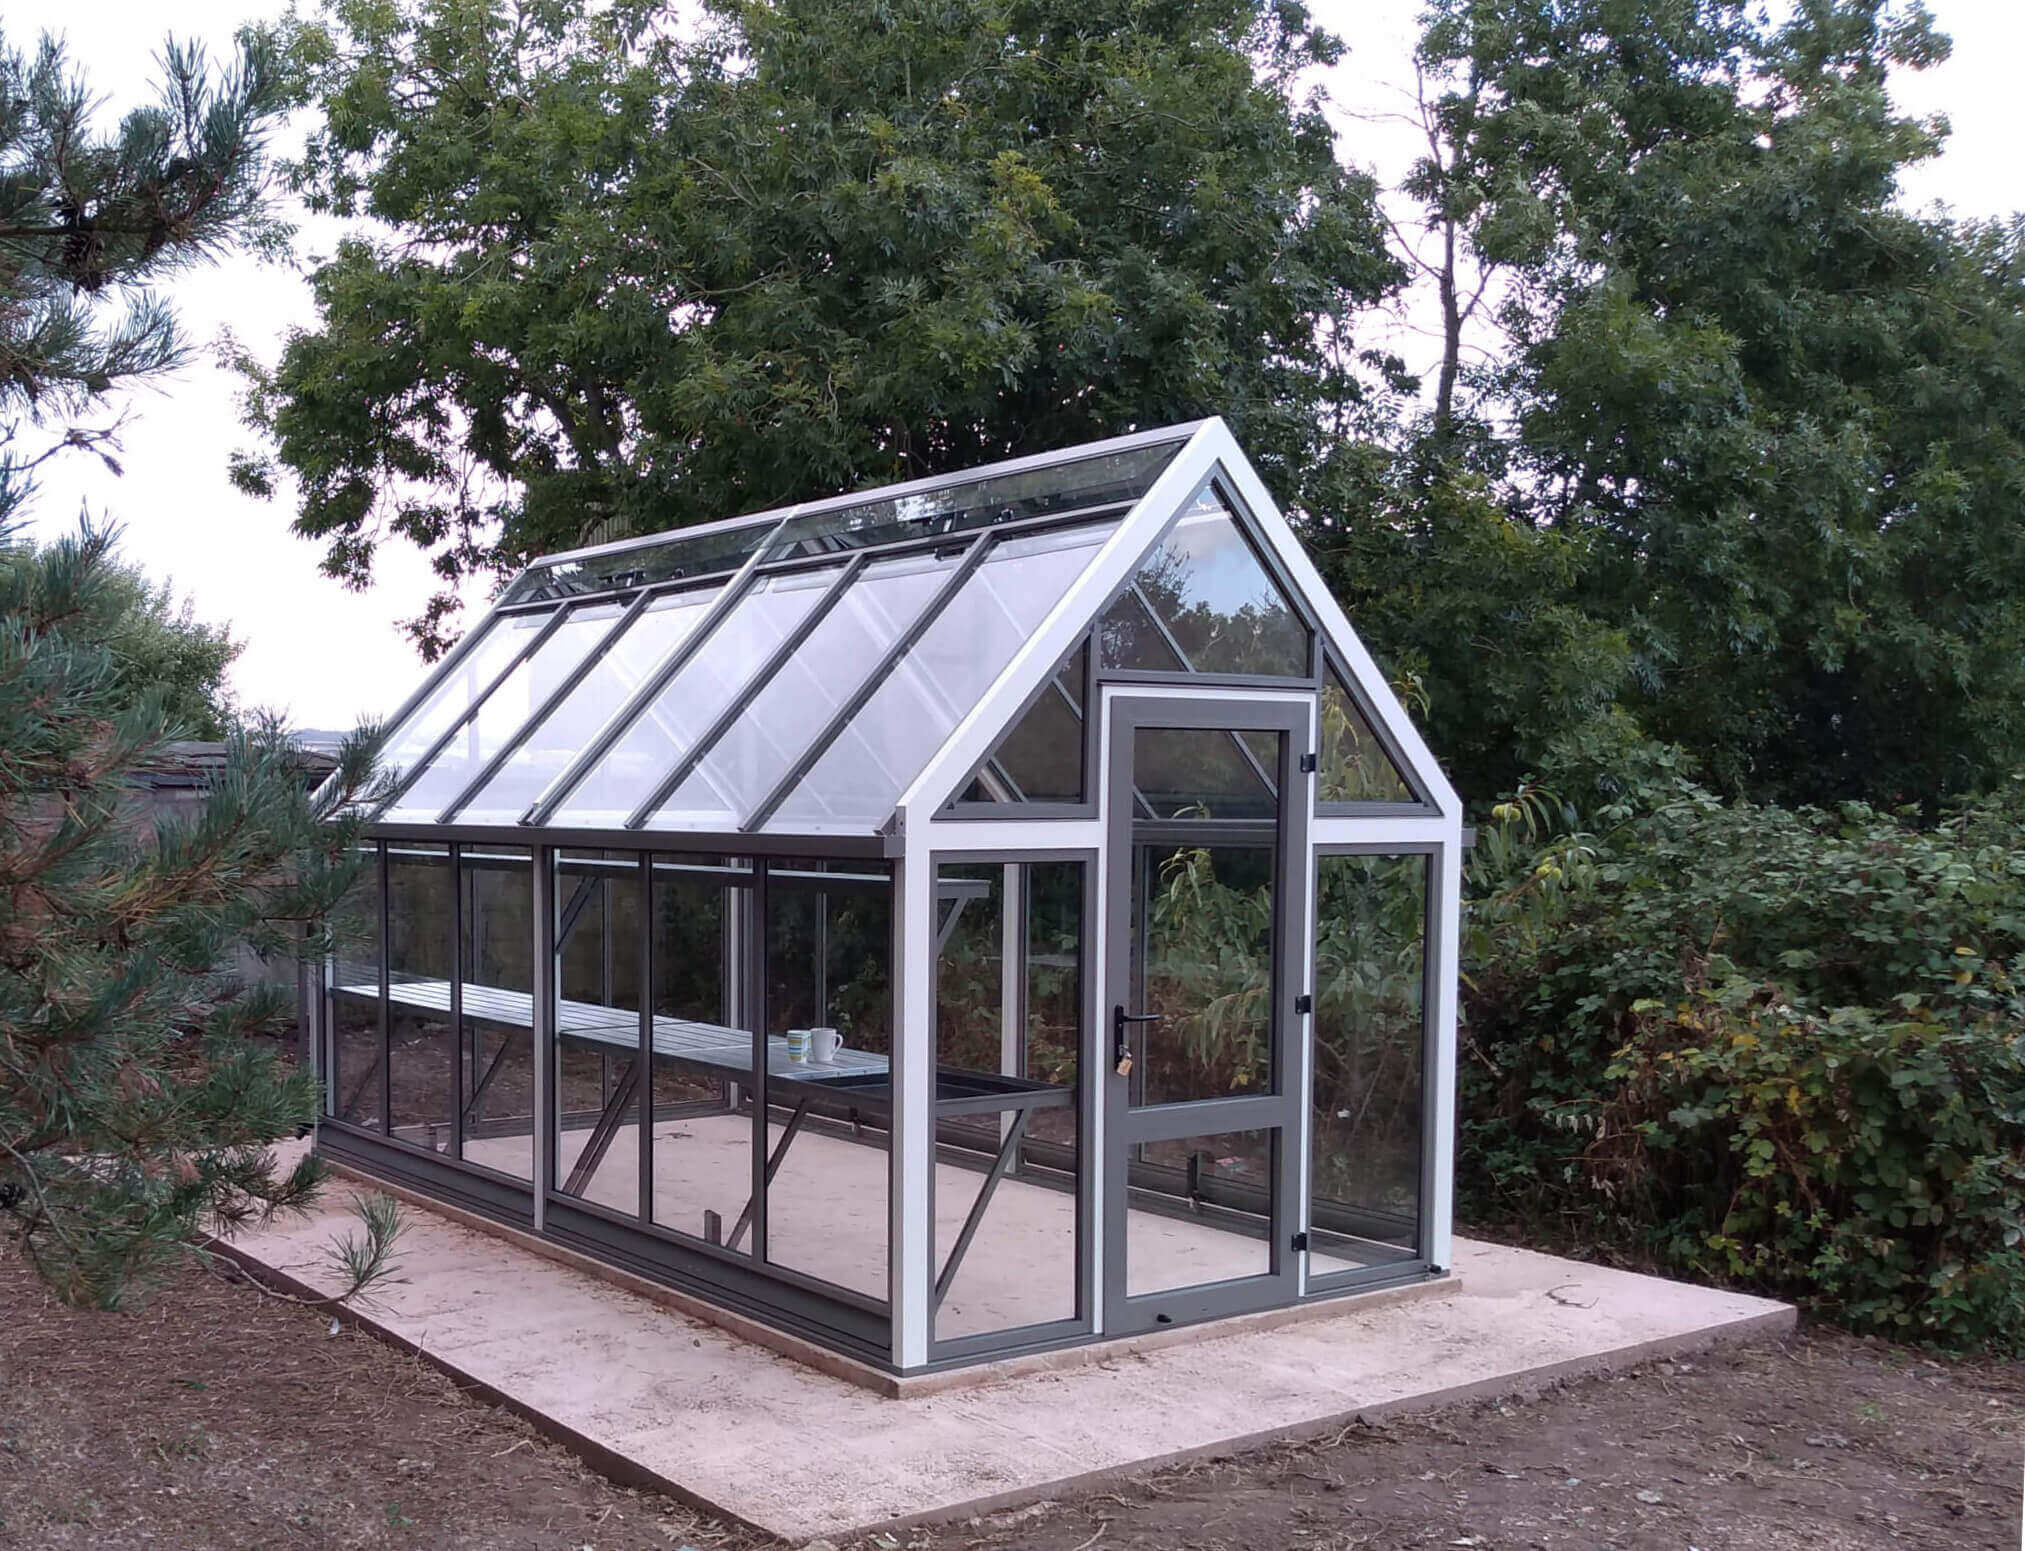 A large Aluminium Greenhouse